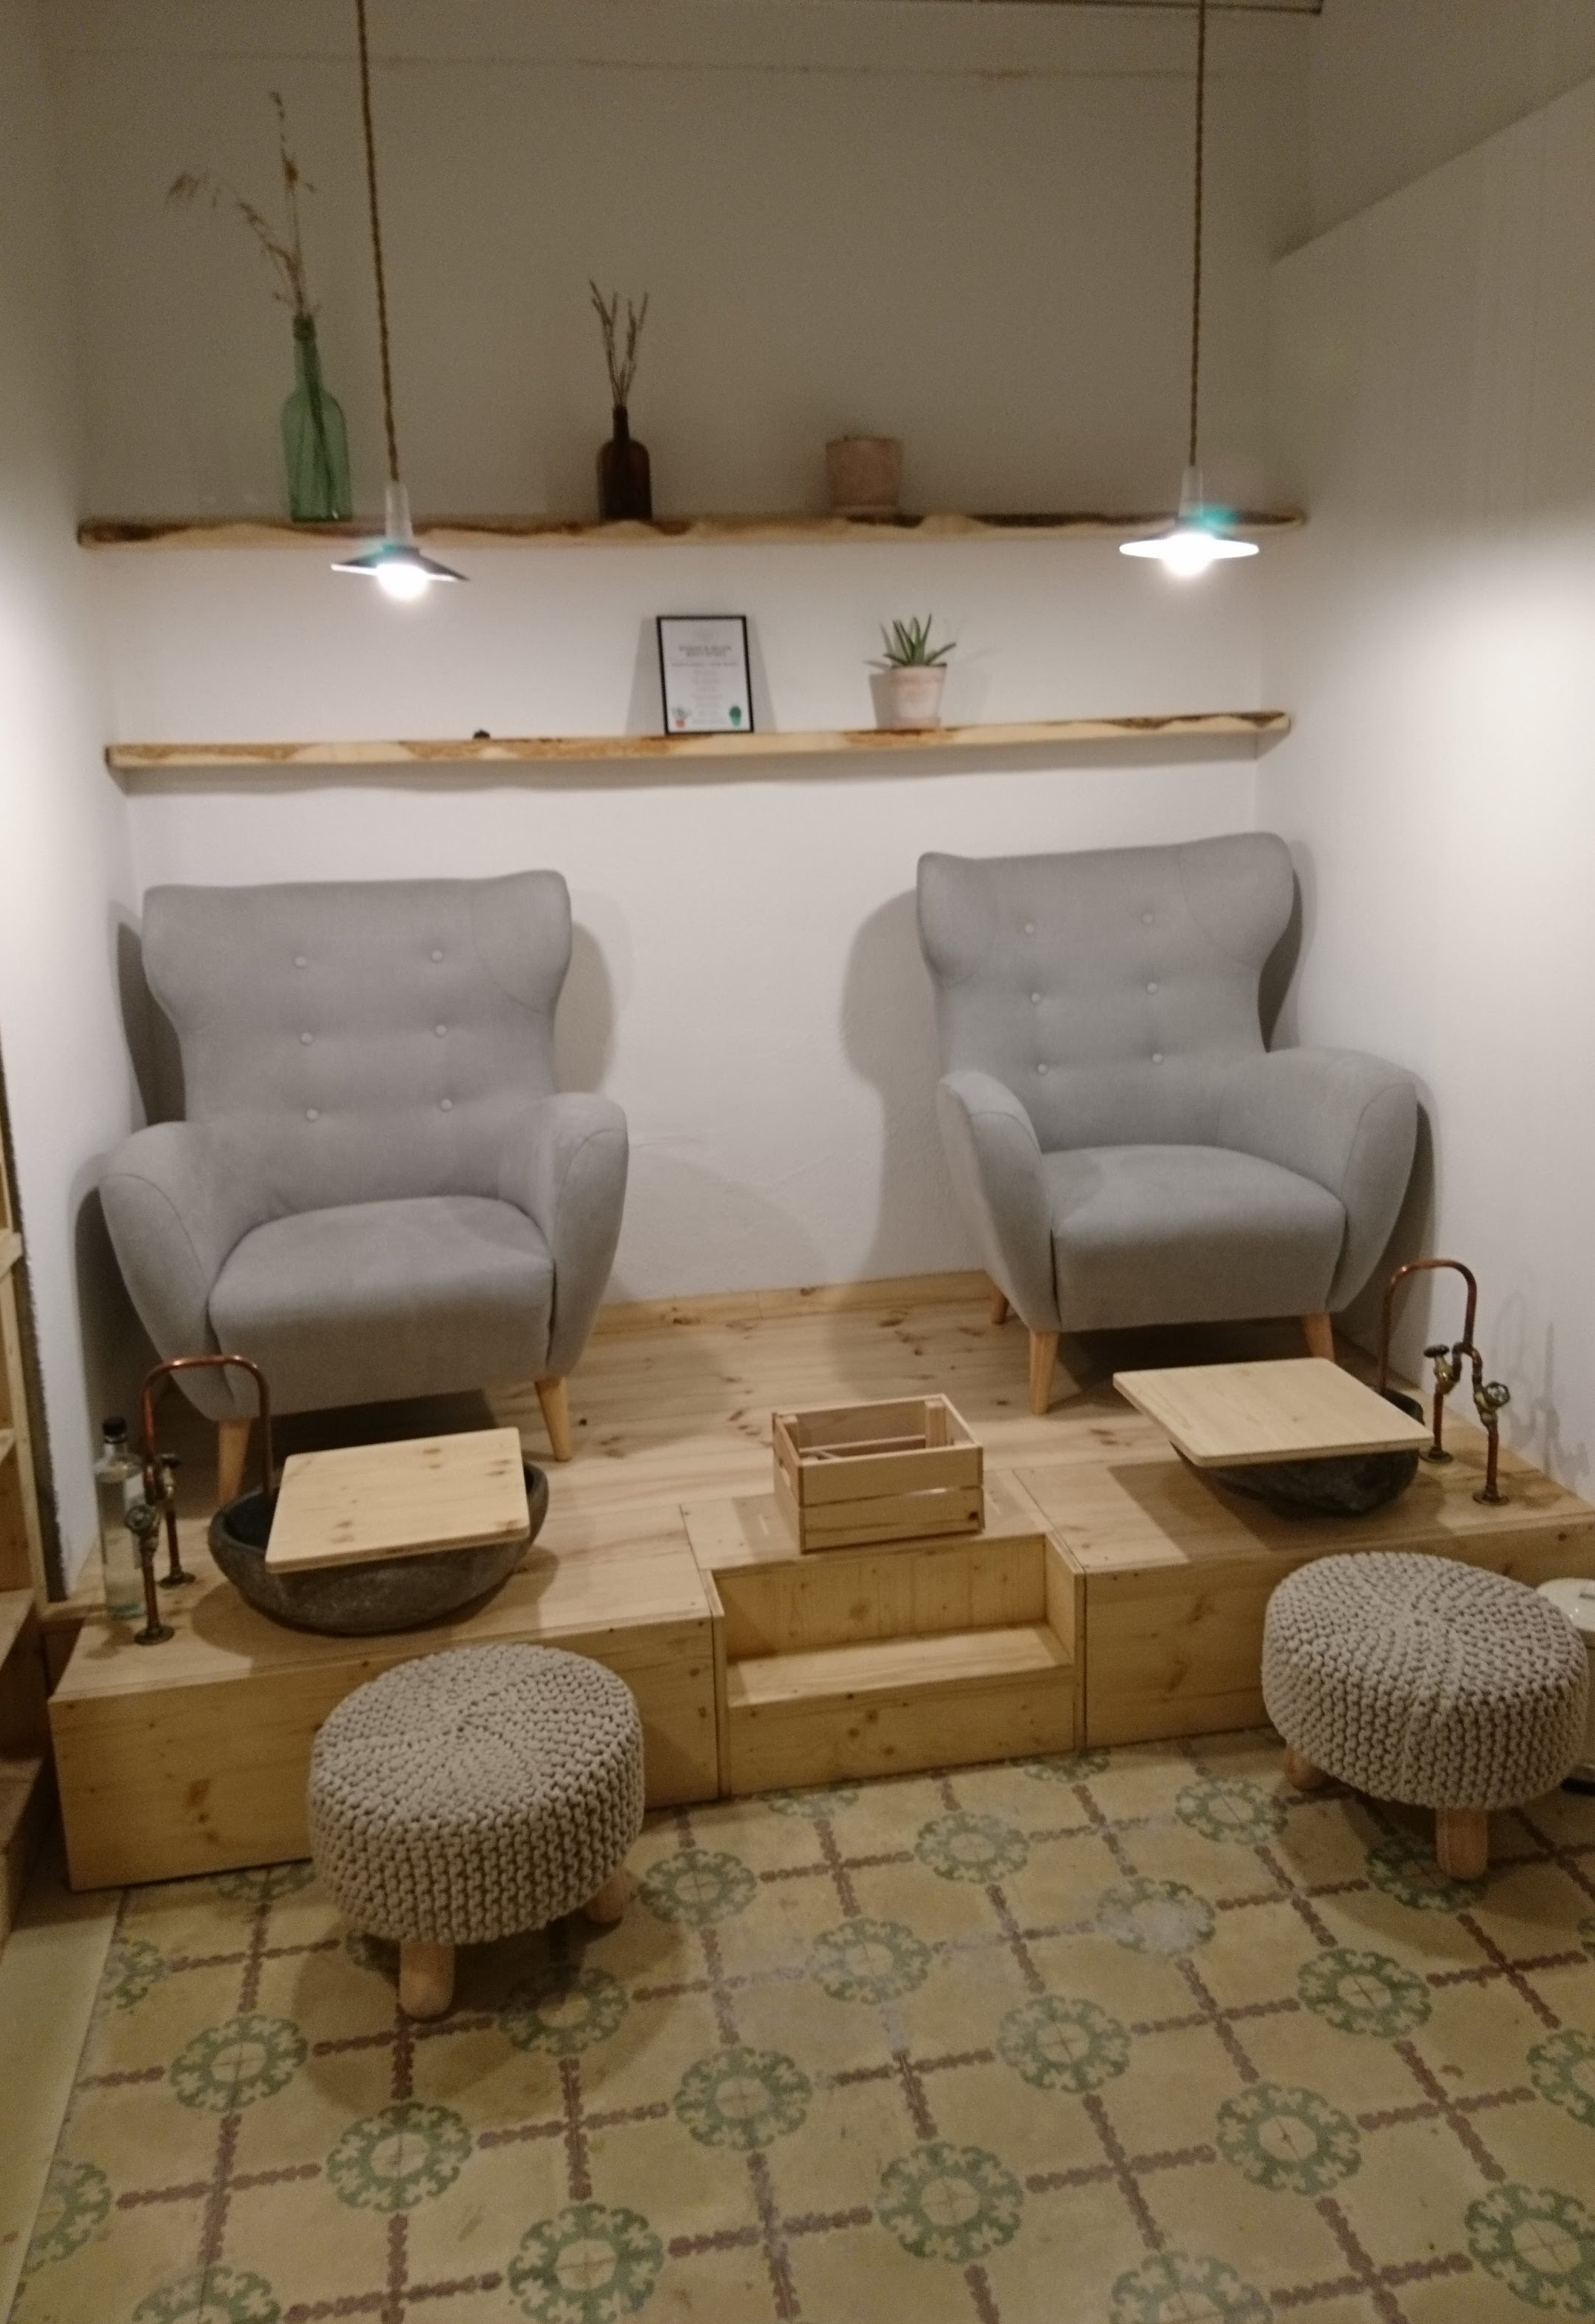 Vegere treatment chairs